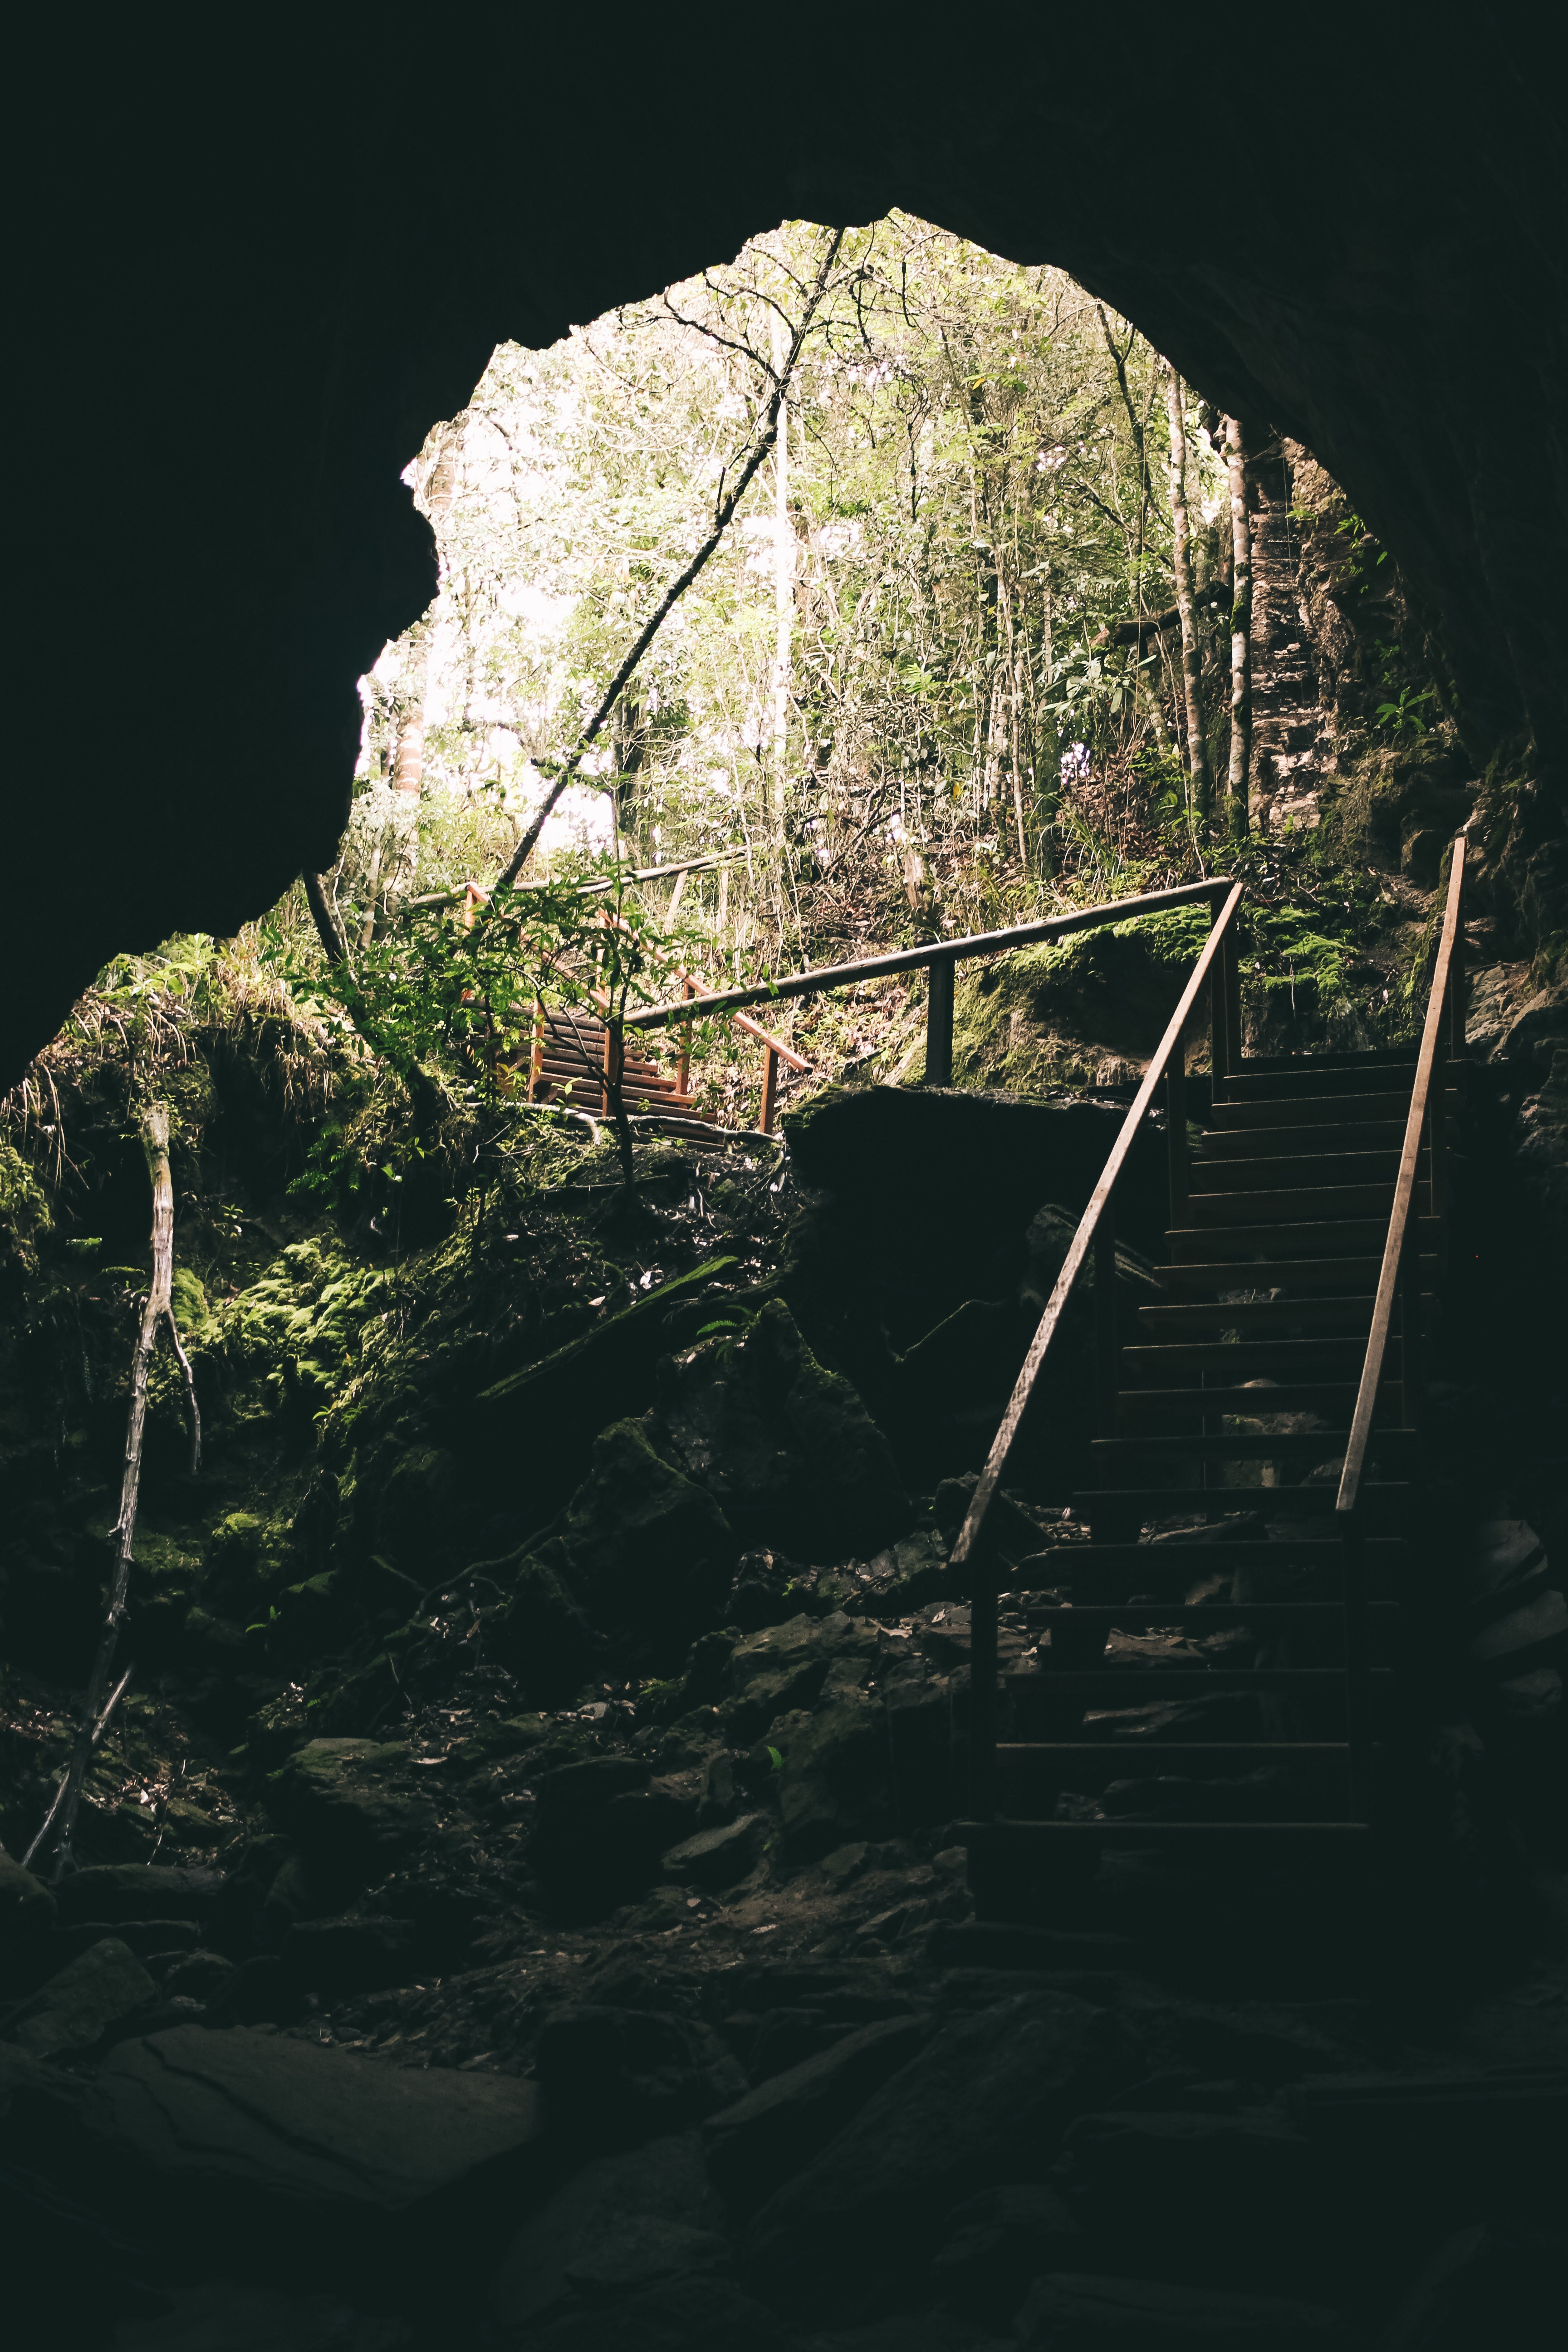 Brown Wooden Stairs, Cave, Outdoors, Trees, Stones, HQ Photo